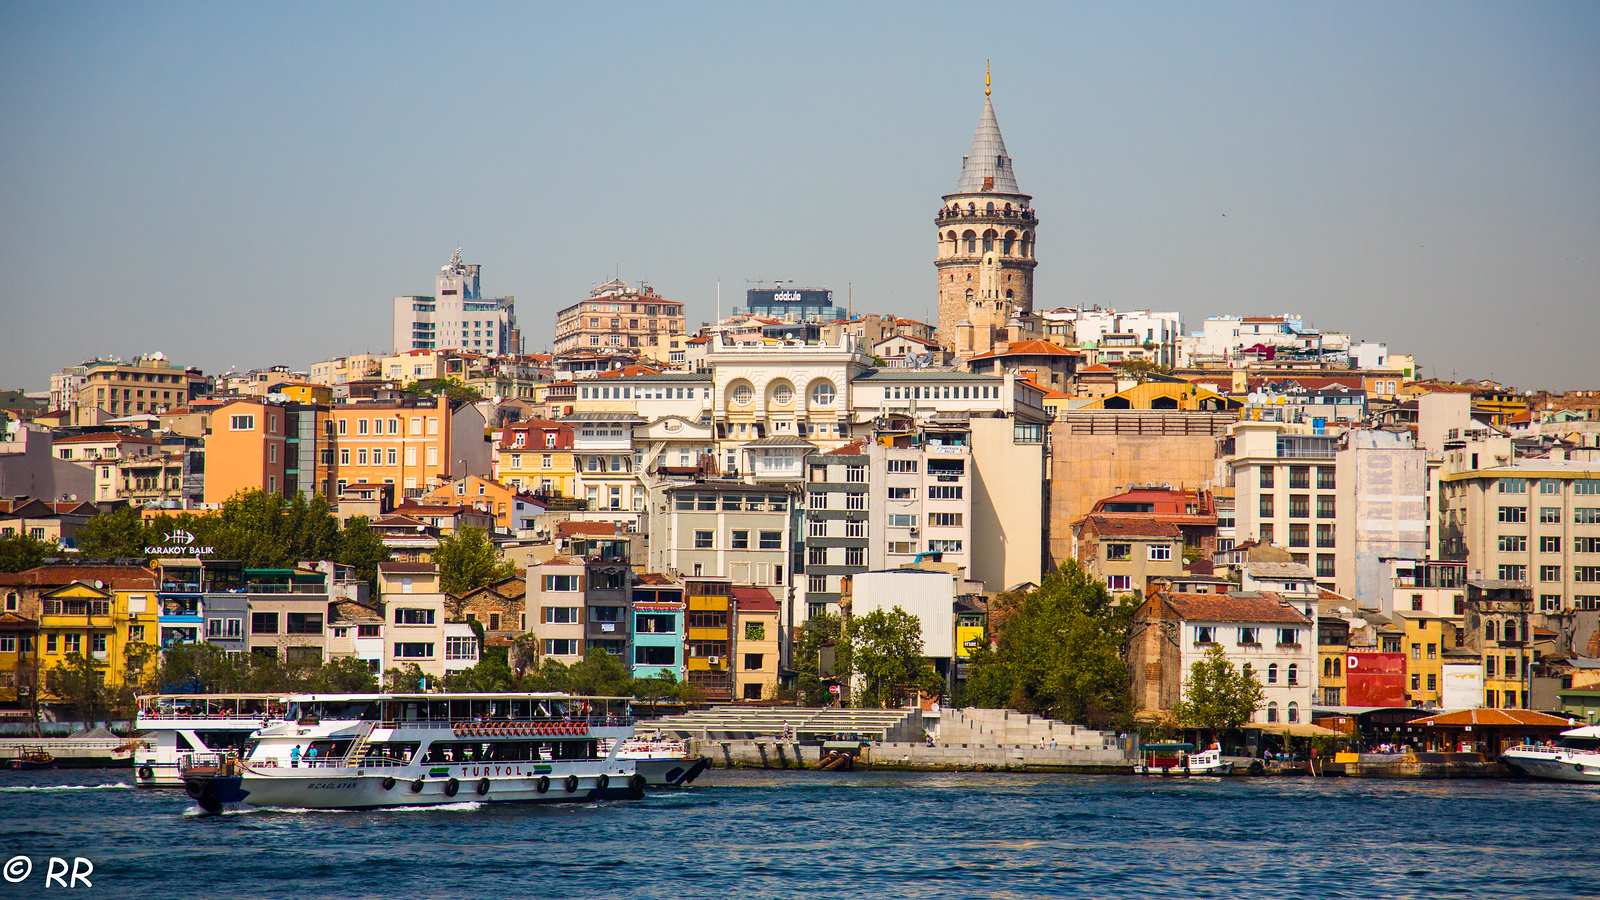 View of Galata tower from across the Bosphorous